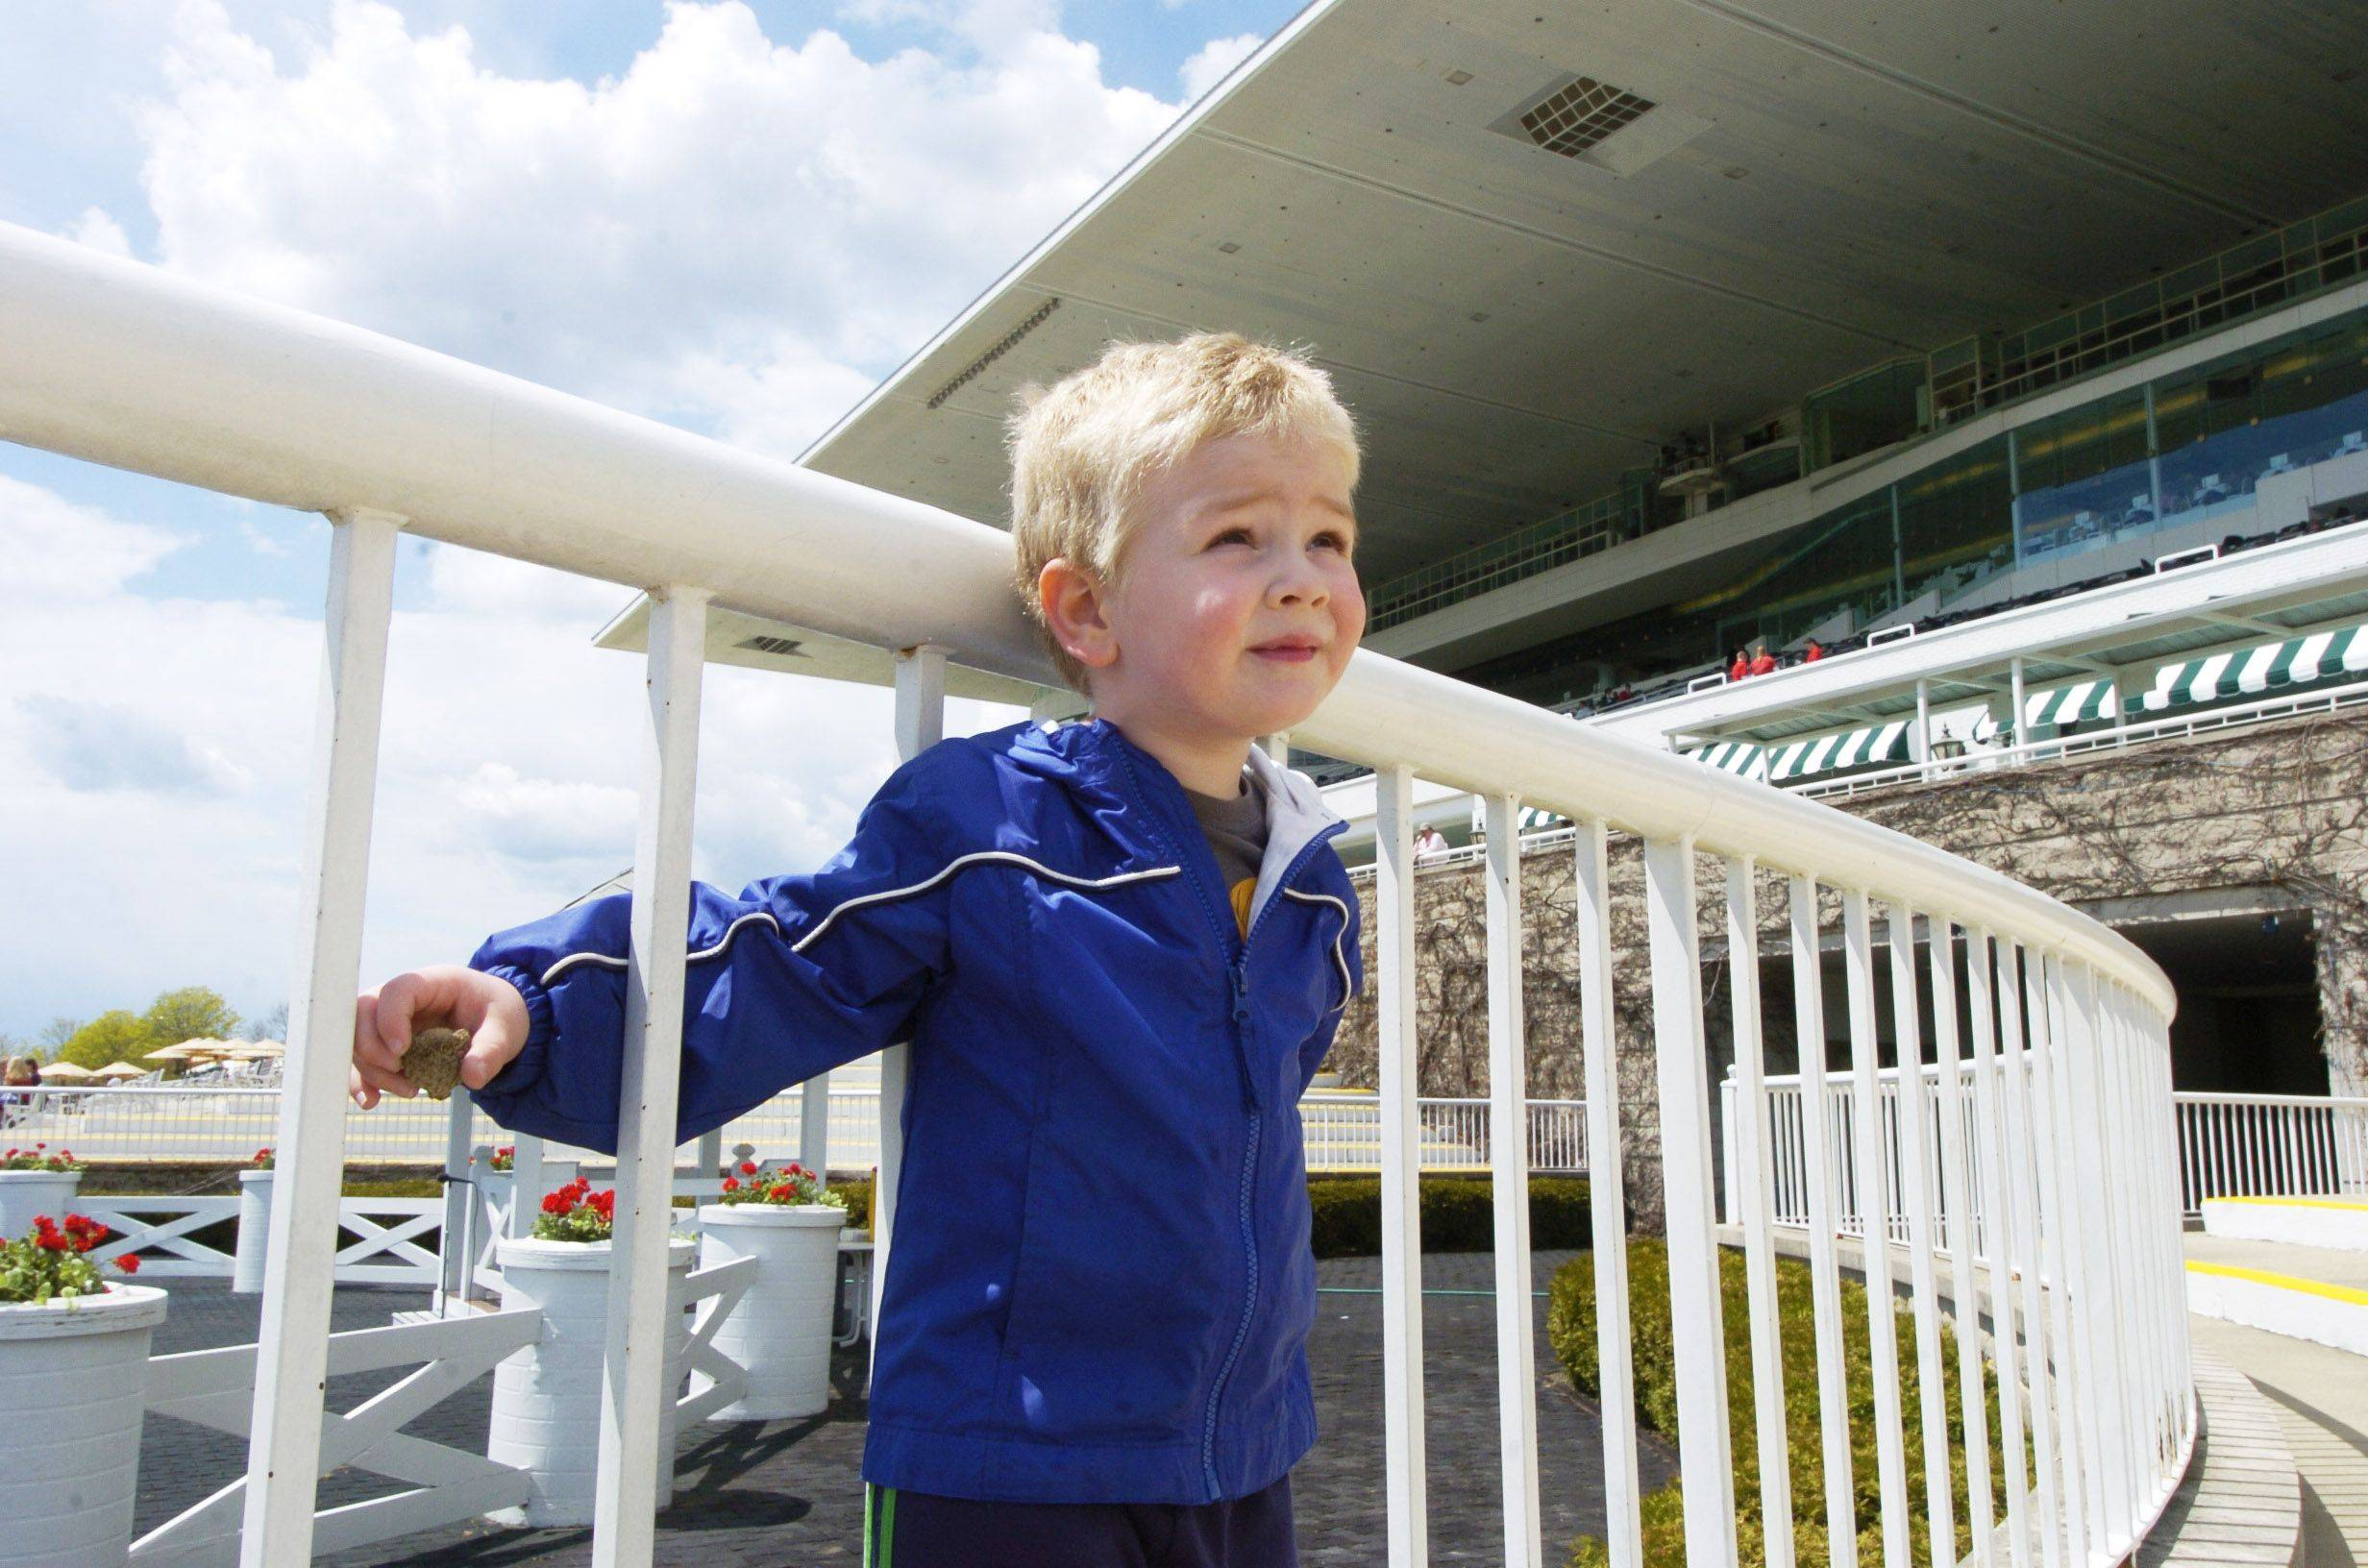 Christian Ottaviano, 3, of Gilberts waits for horses near the winners circle Friday.